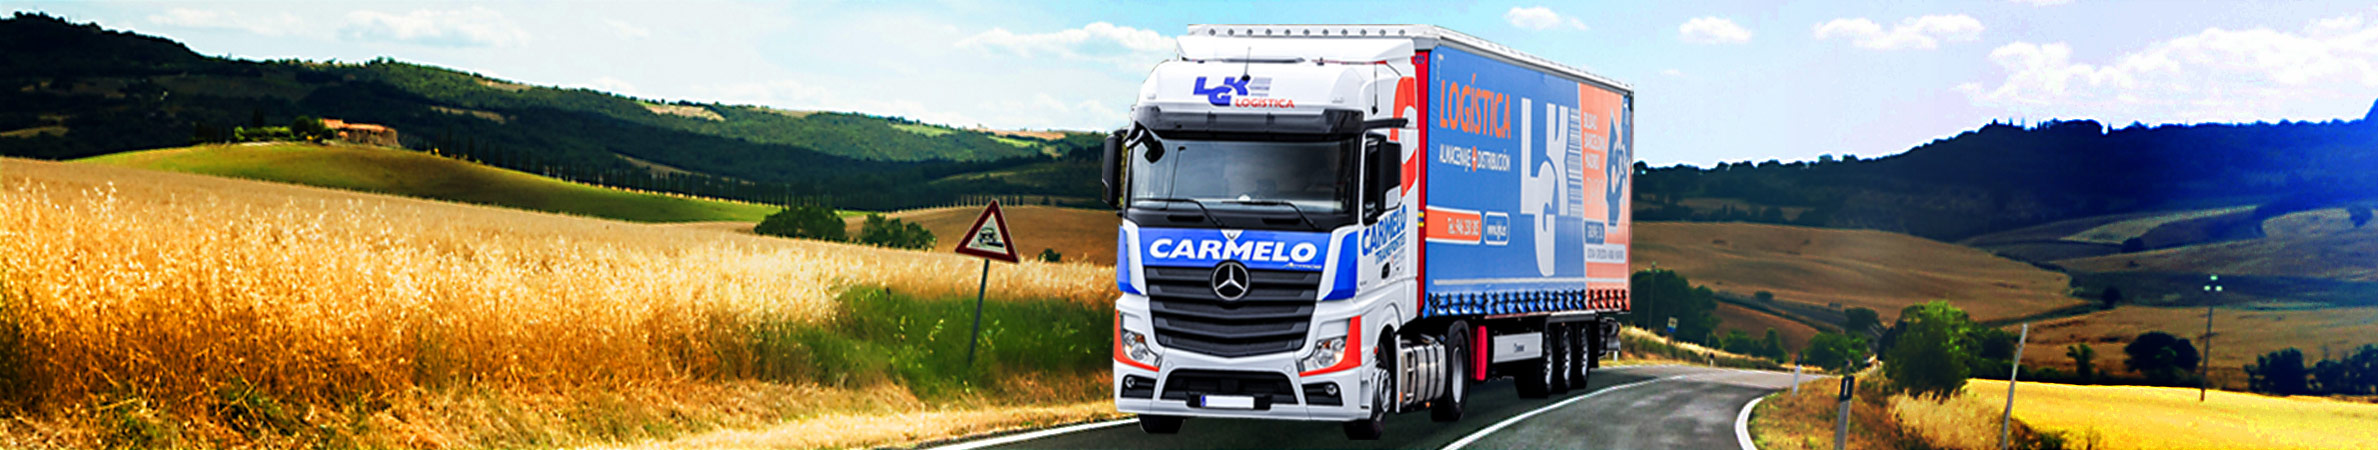 camion_solo